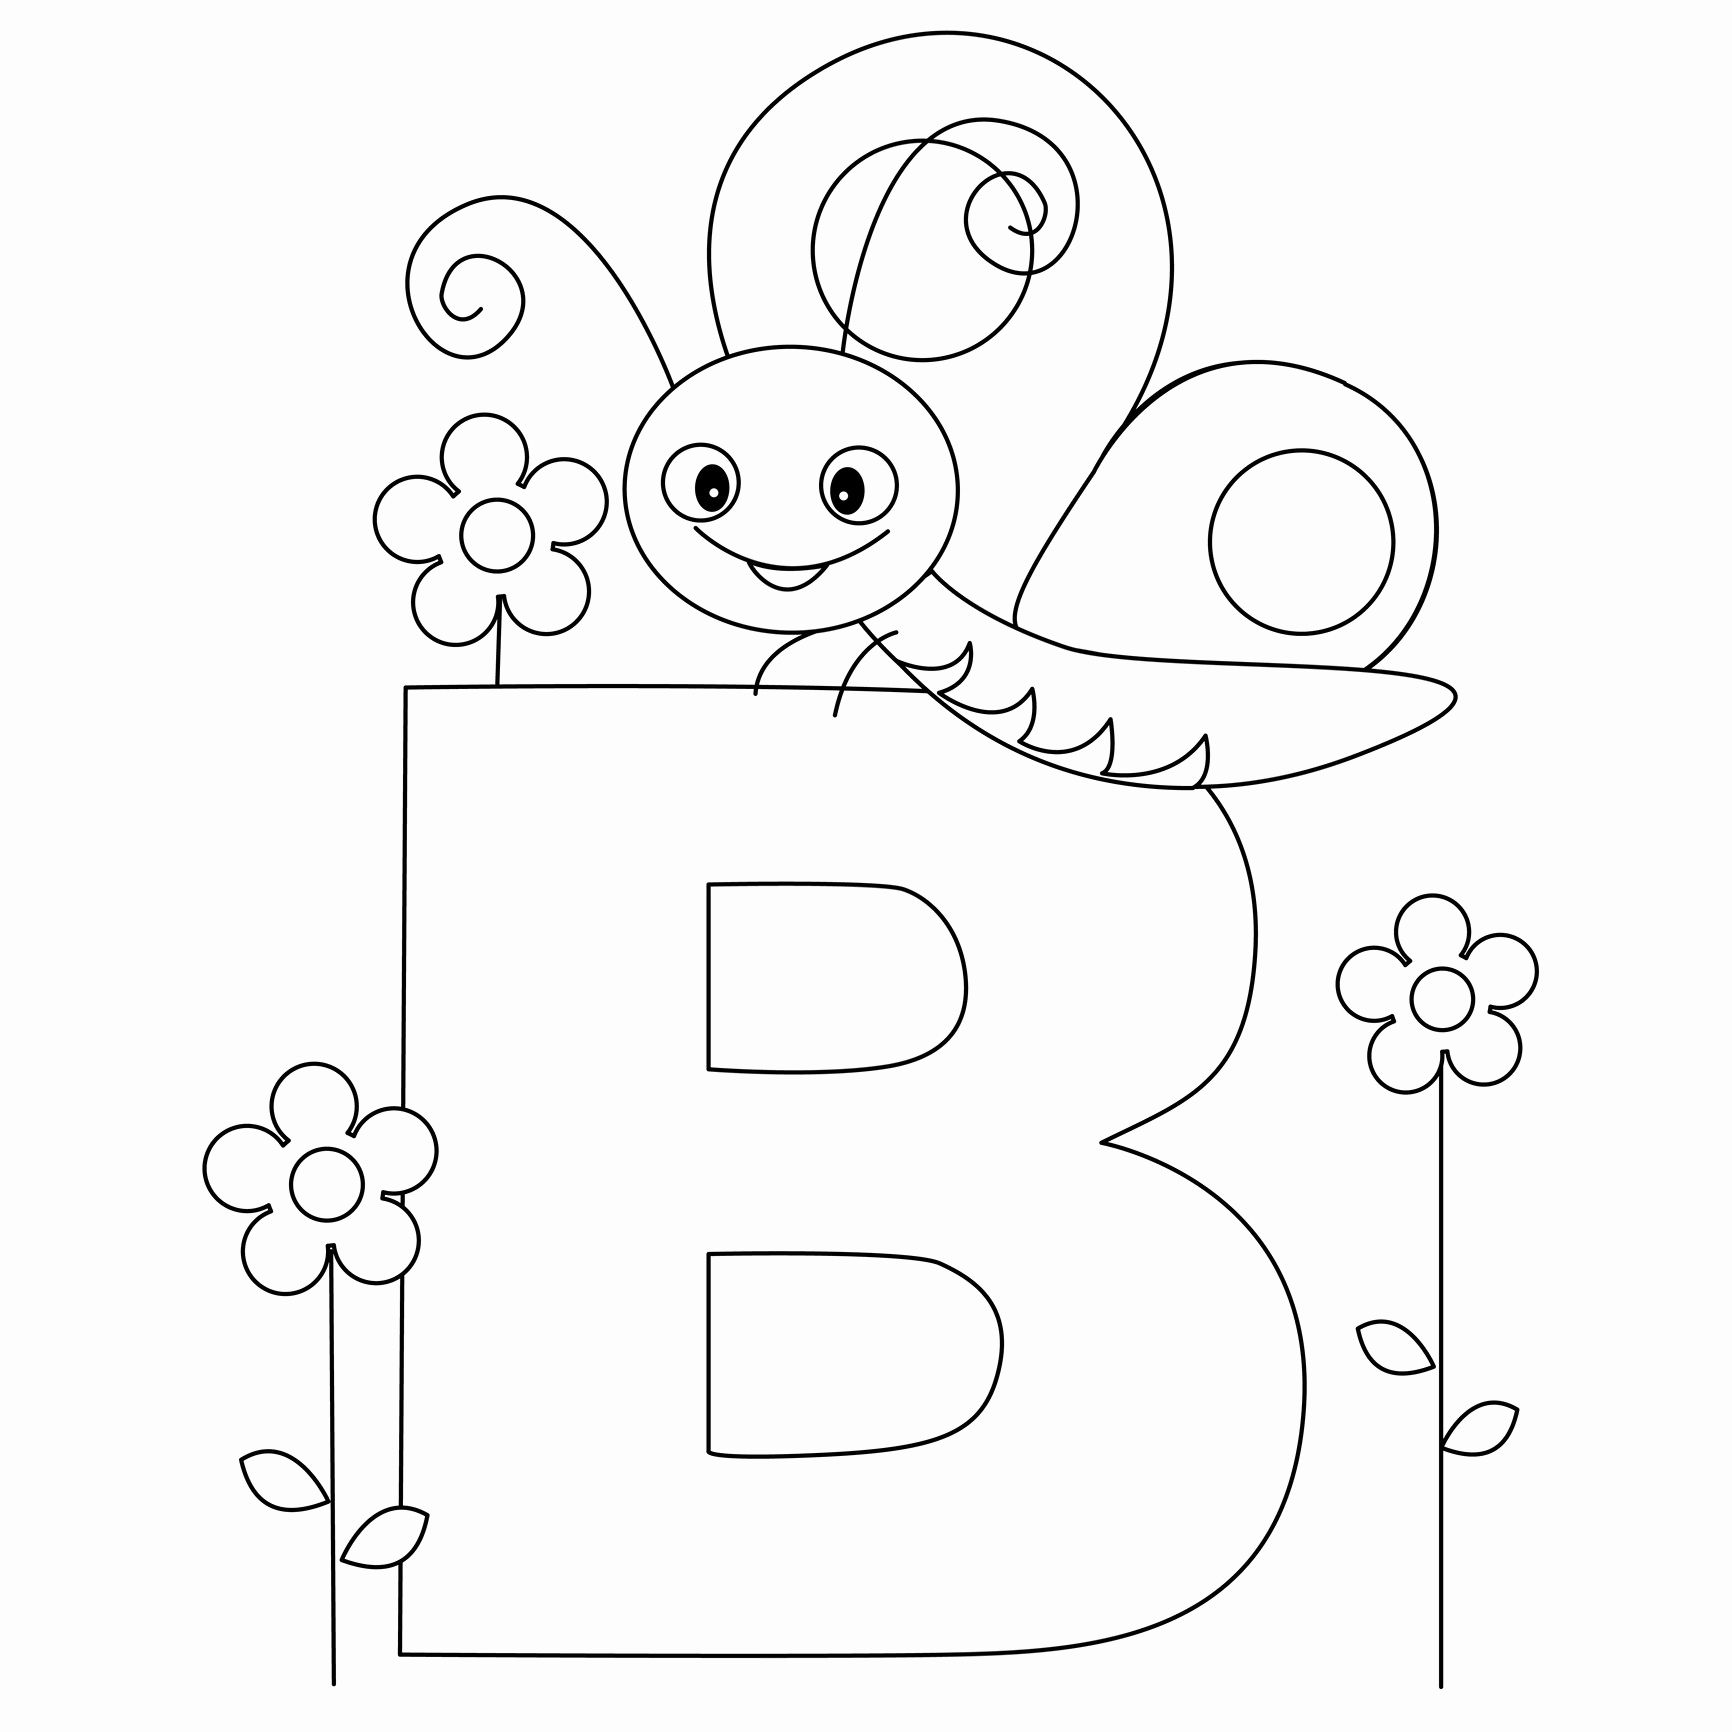 Alphabet Coloring Book Printables In 2020 (With Images) Coloring